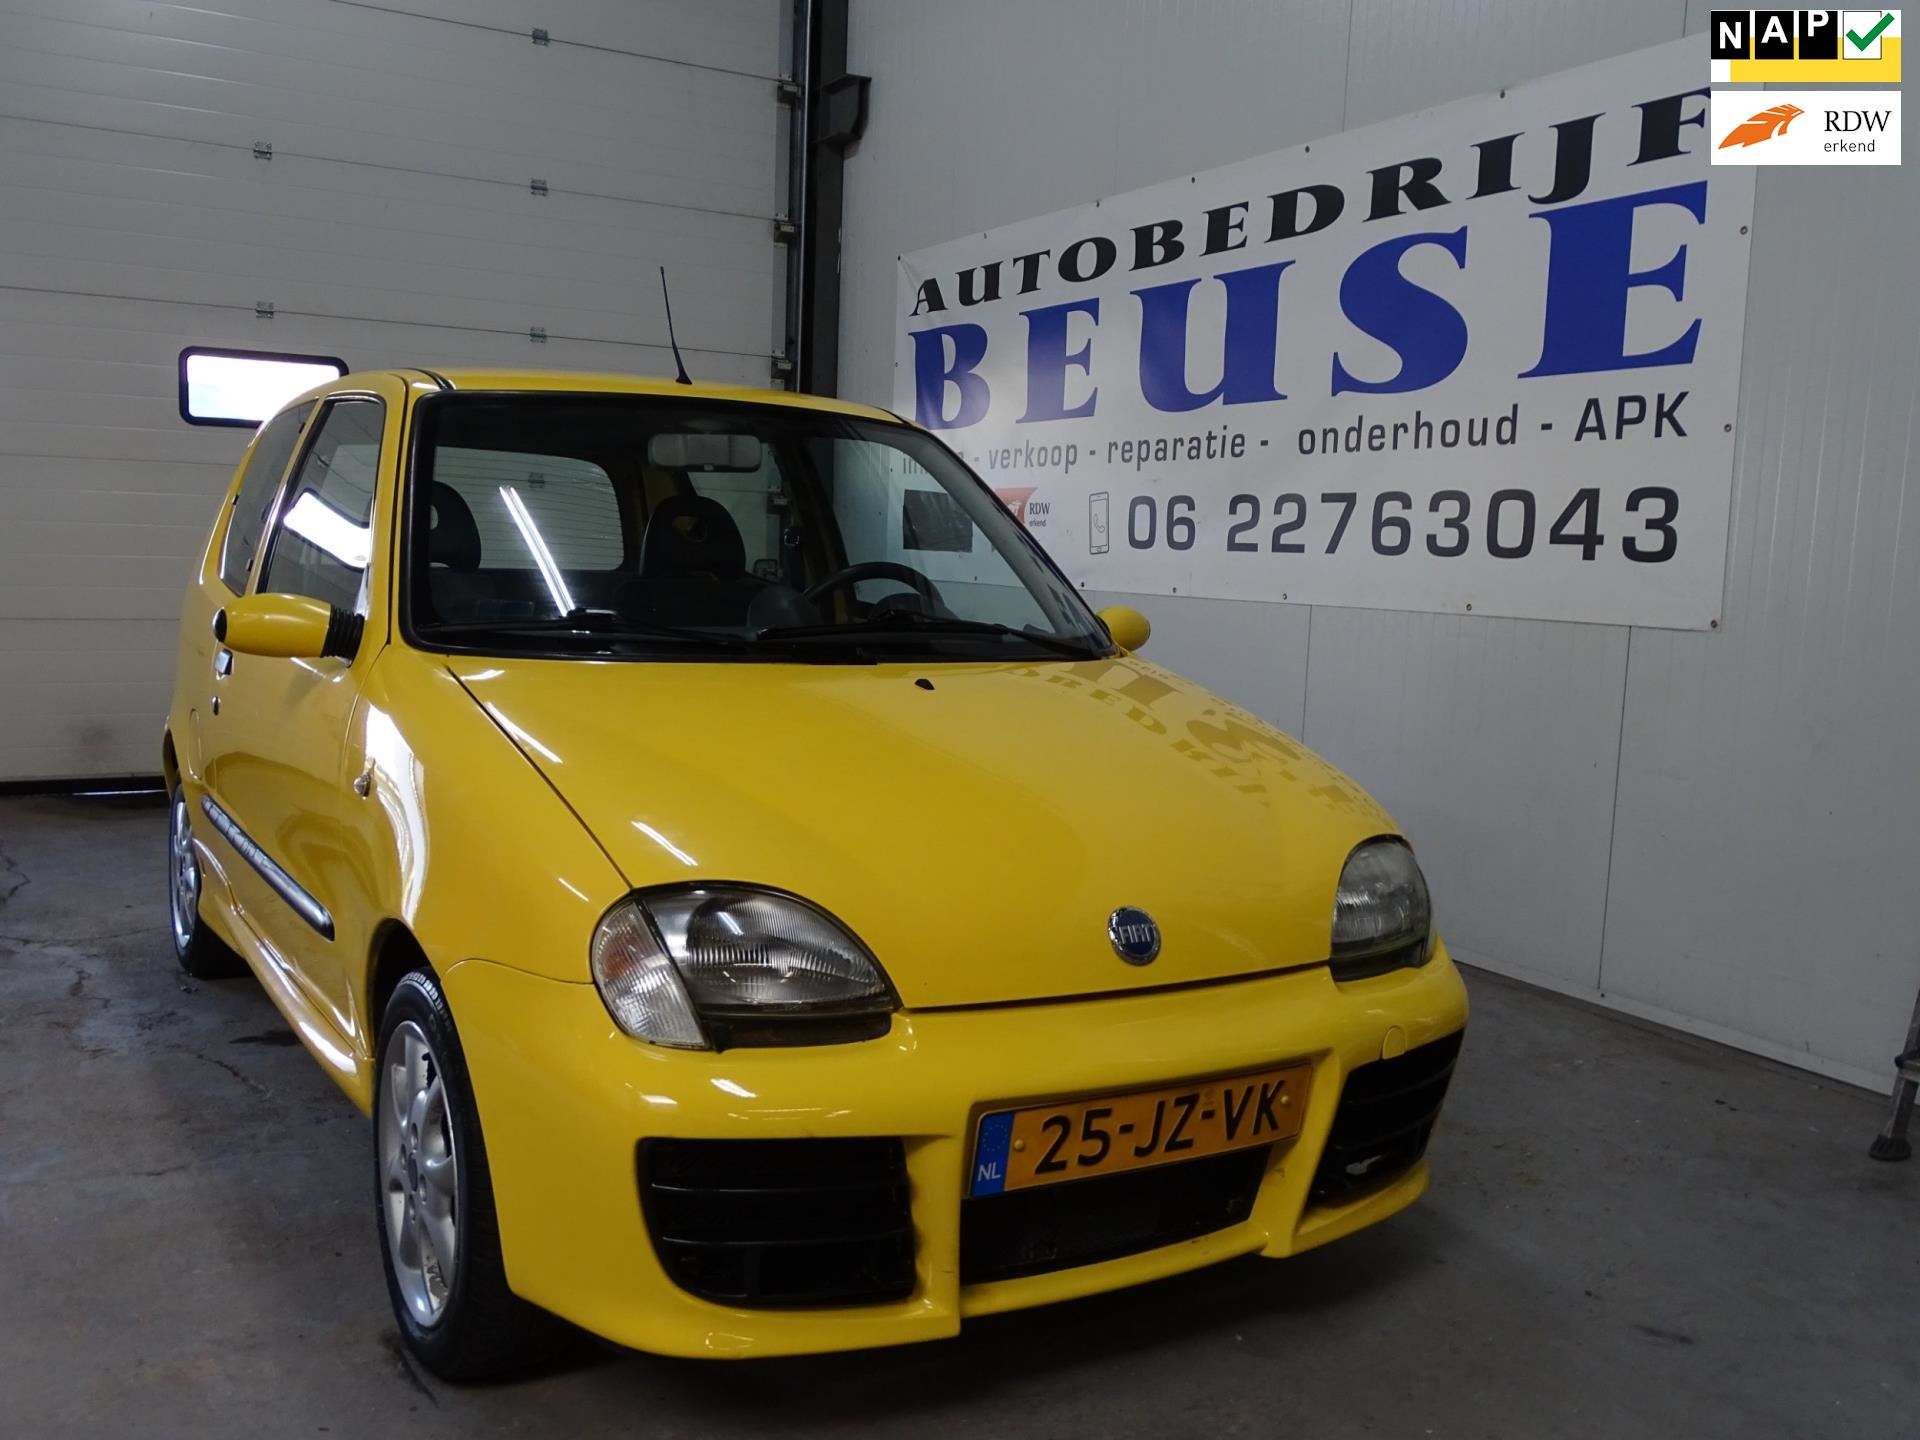 Fiat Seicento occasion - Beuse Auto's